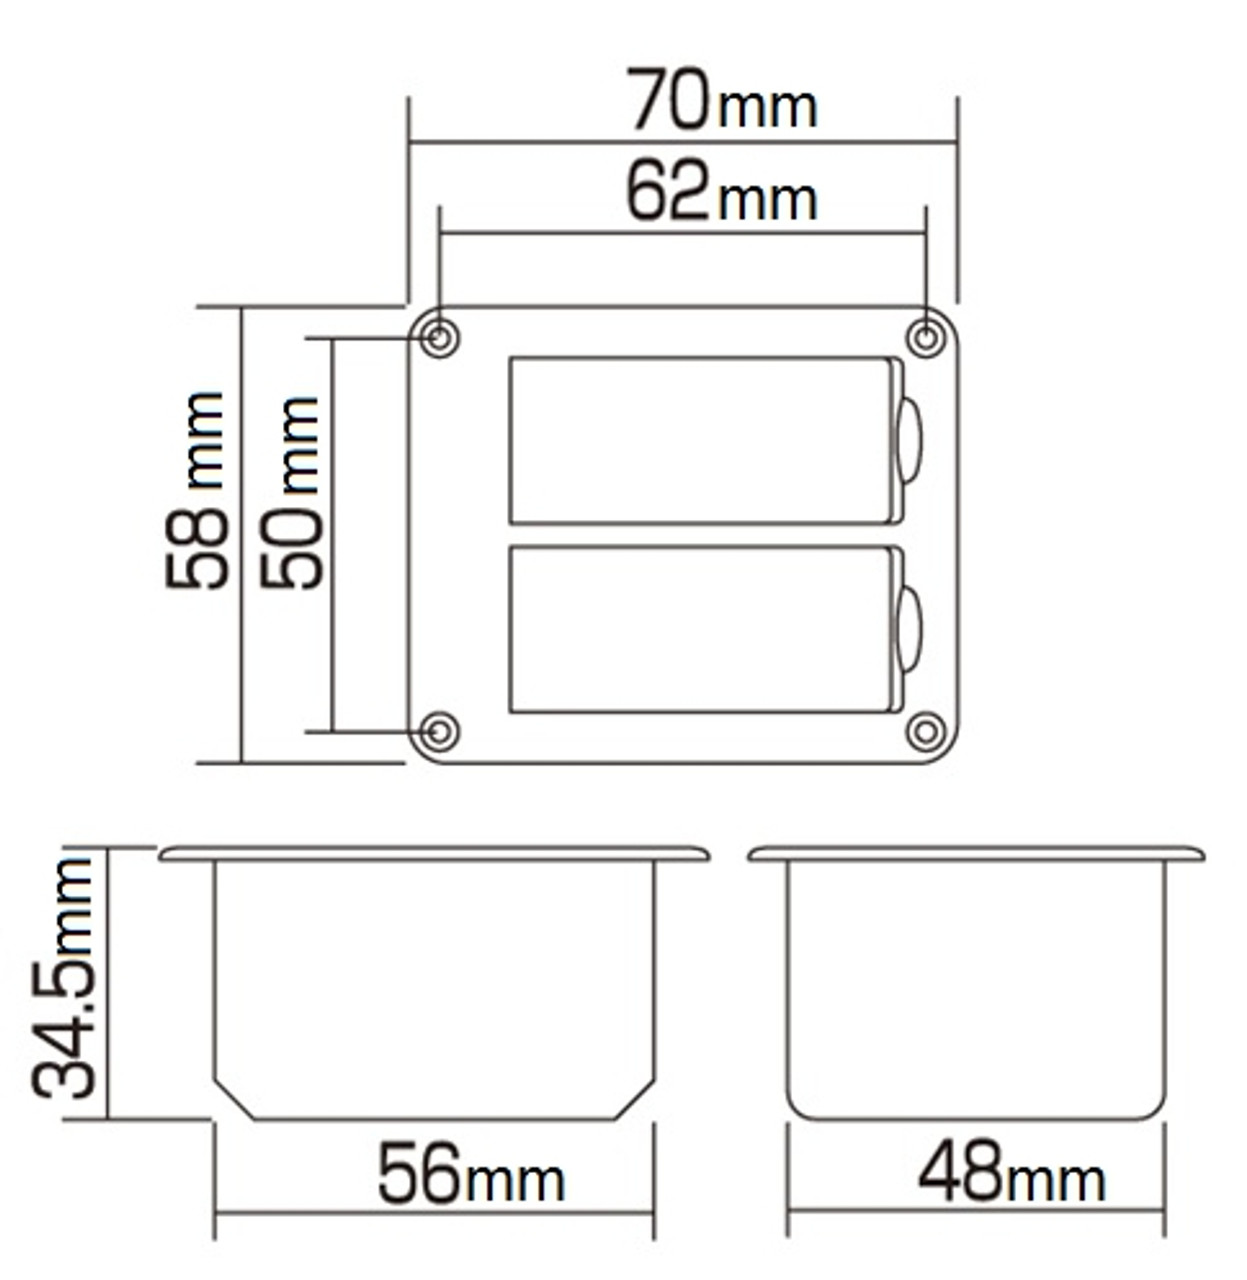 Dual Battery Box Battery Dimensions